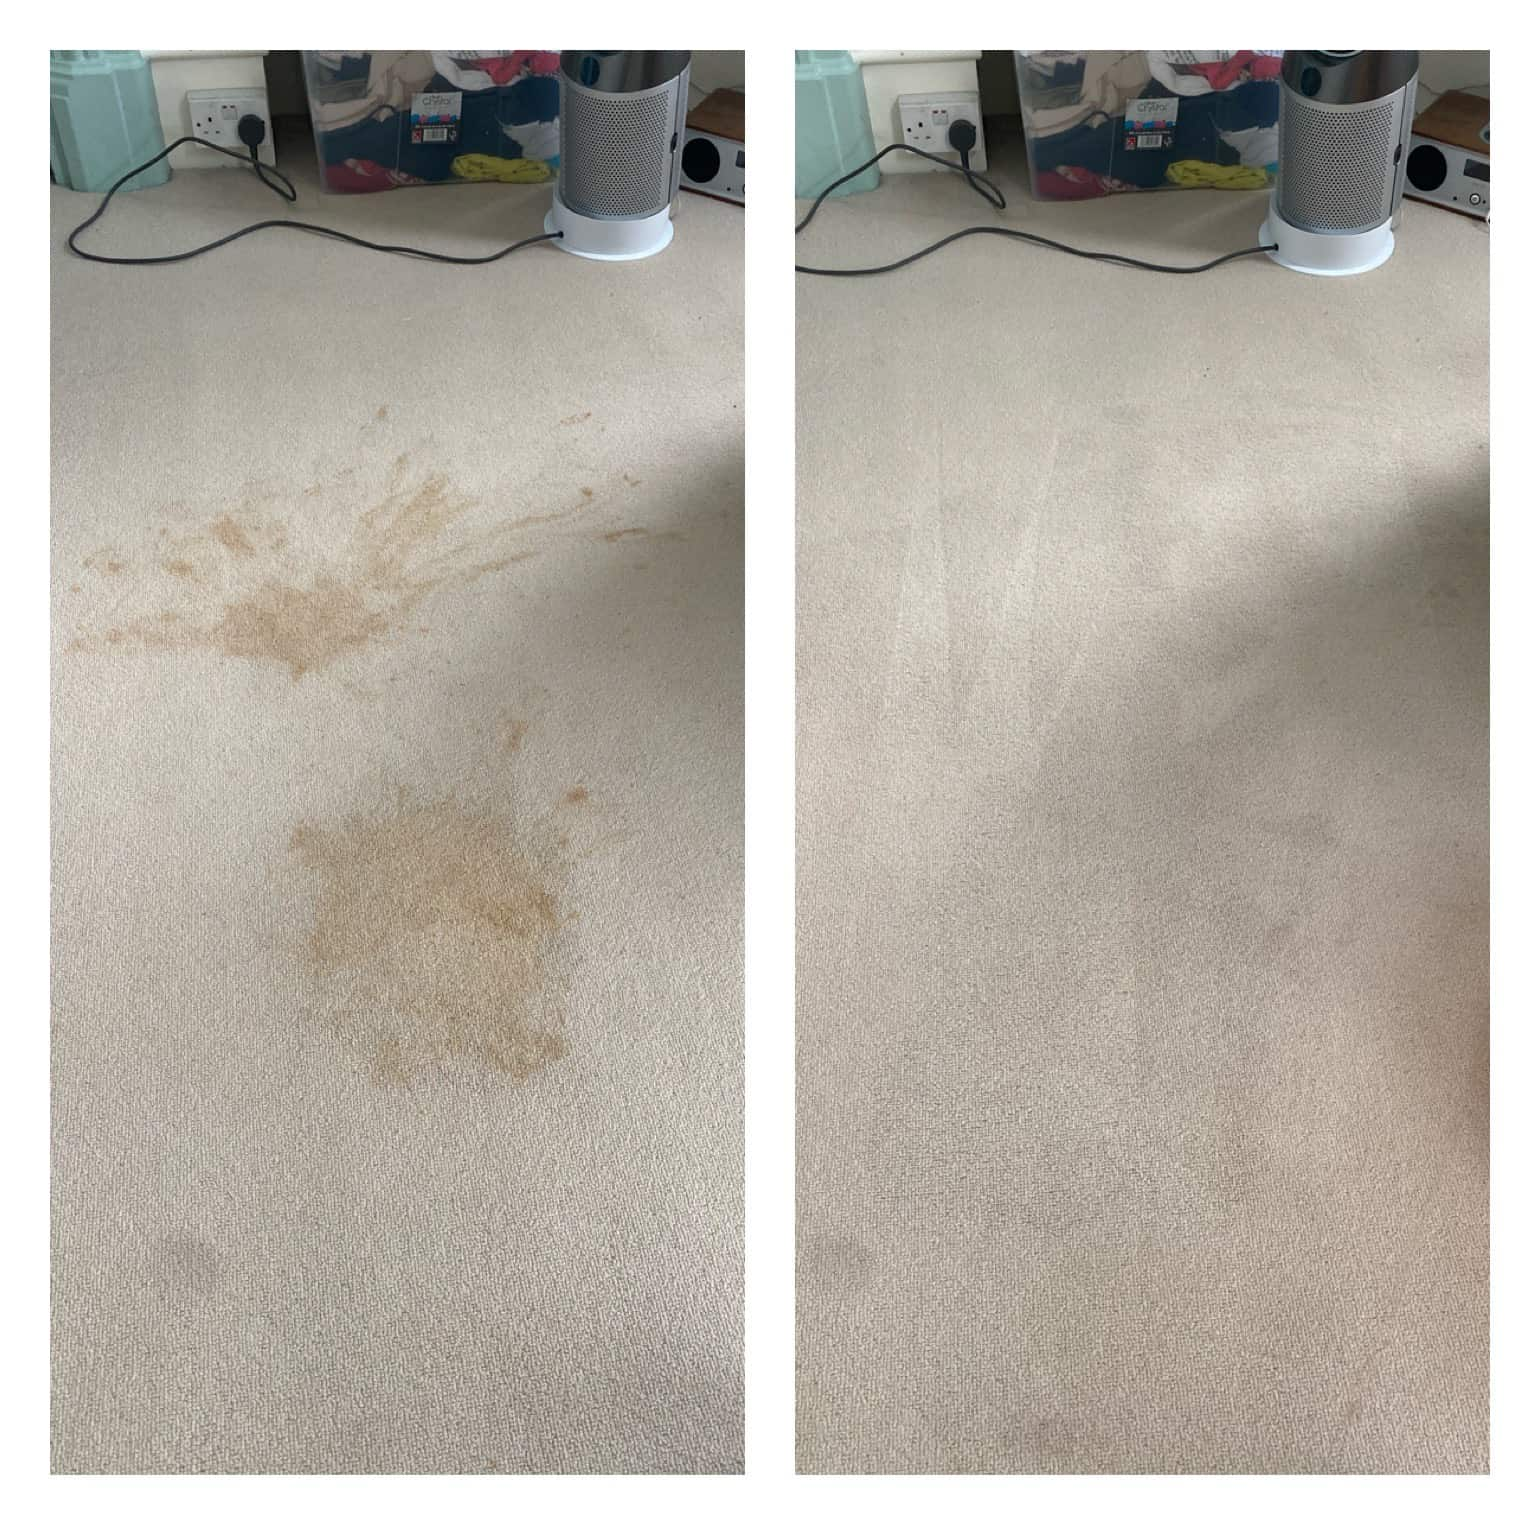 Before and after of stain removal from carpet